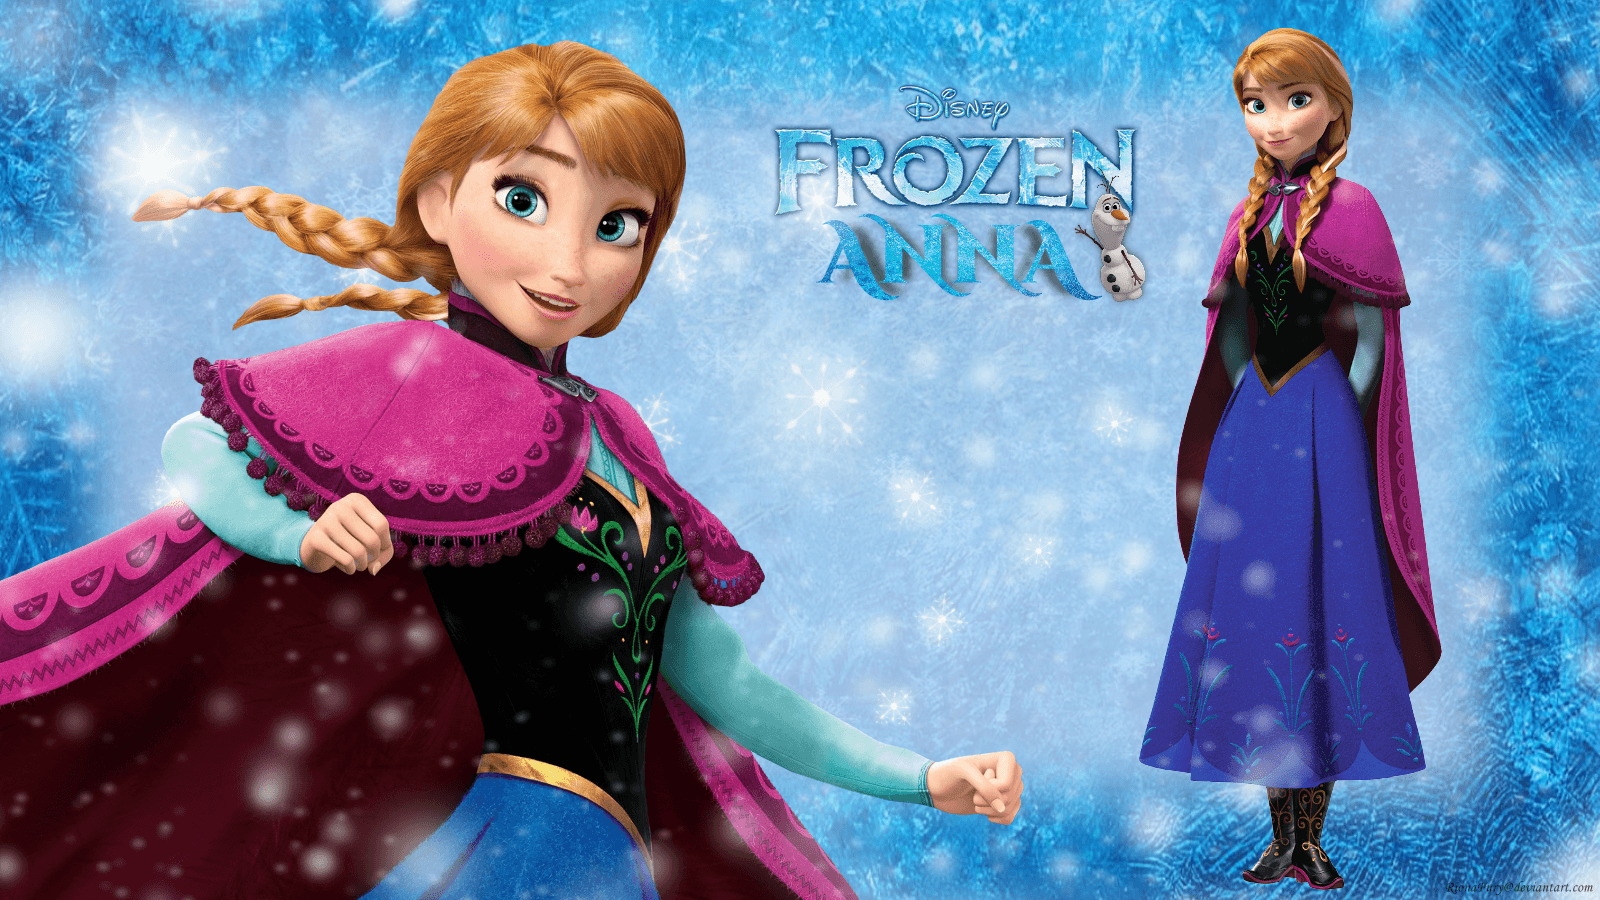 1600x900 Frozen images Frozen Anna HD wallpaper and background photos (37731259)